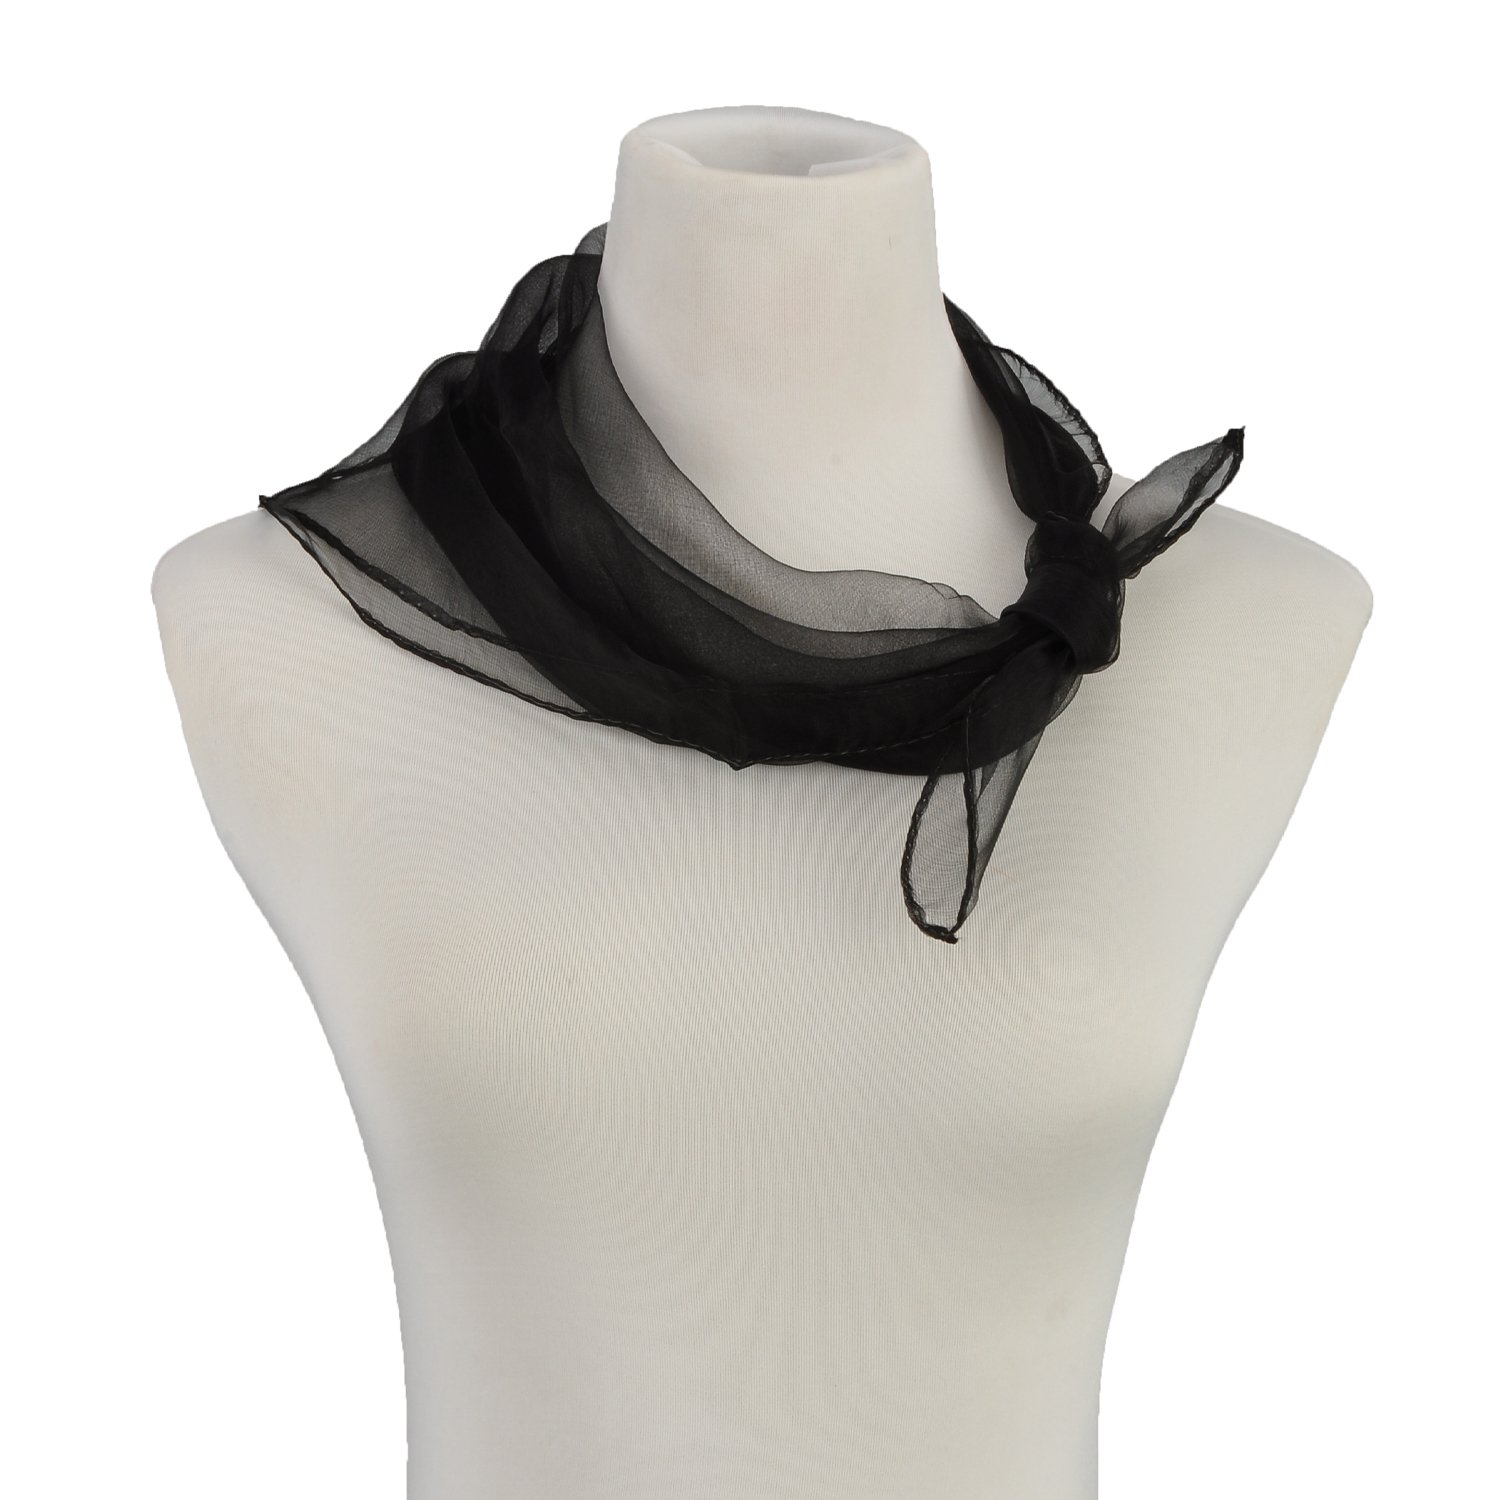 HERRICO Brightly Colored Nylon Dancing And Juggling Scarves Fashion Black by HERRICO (Image #6)